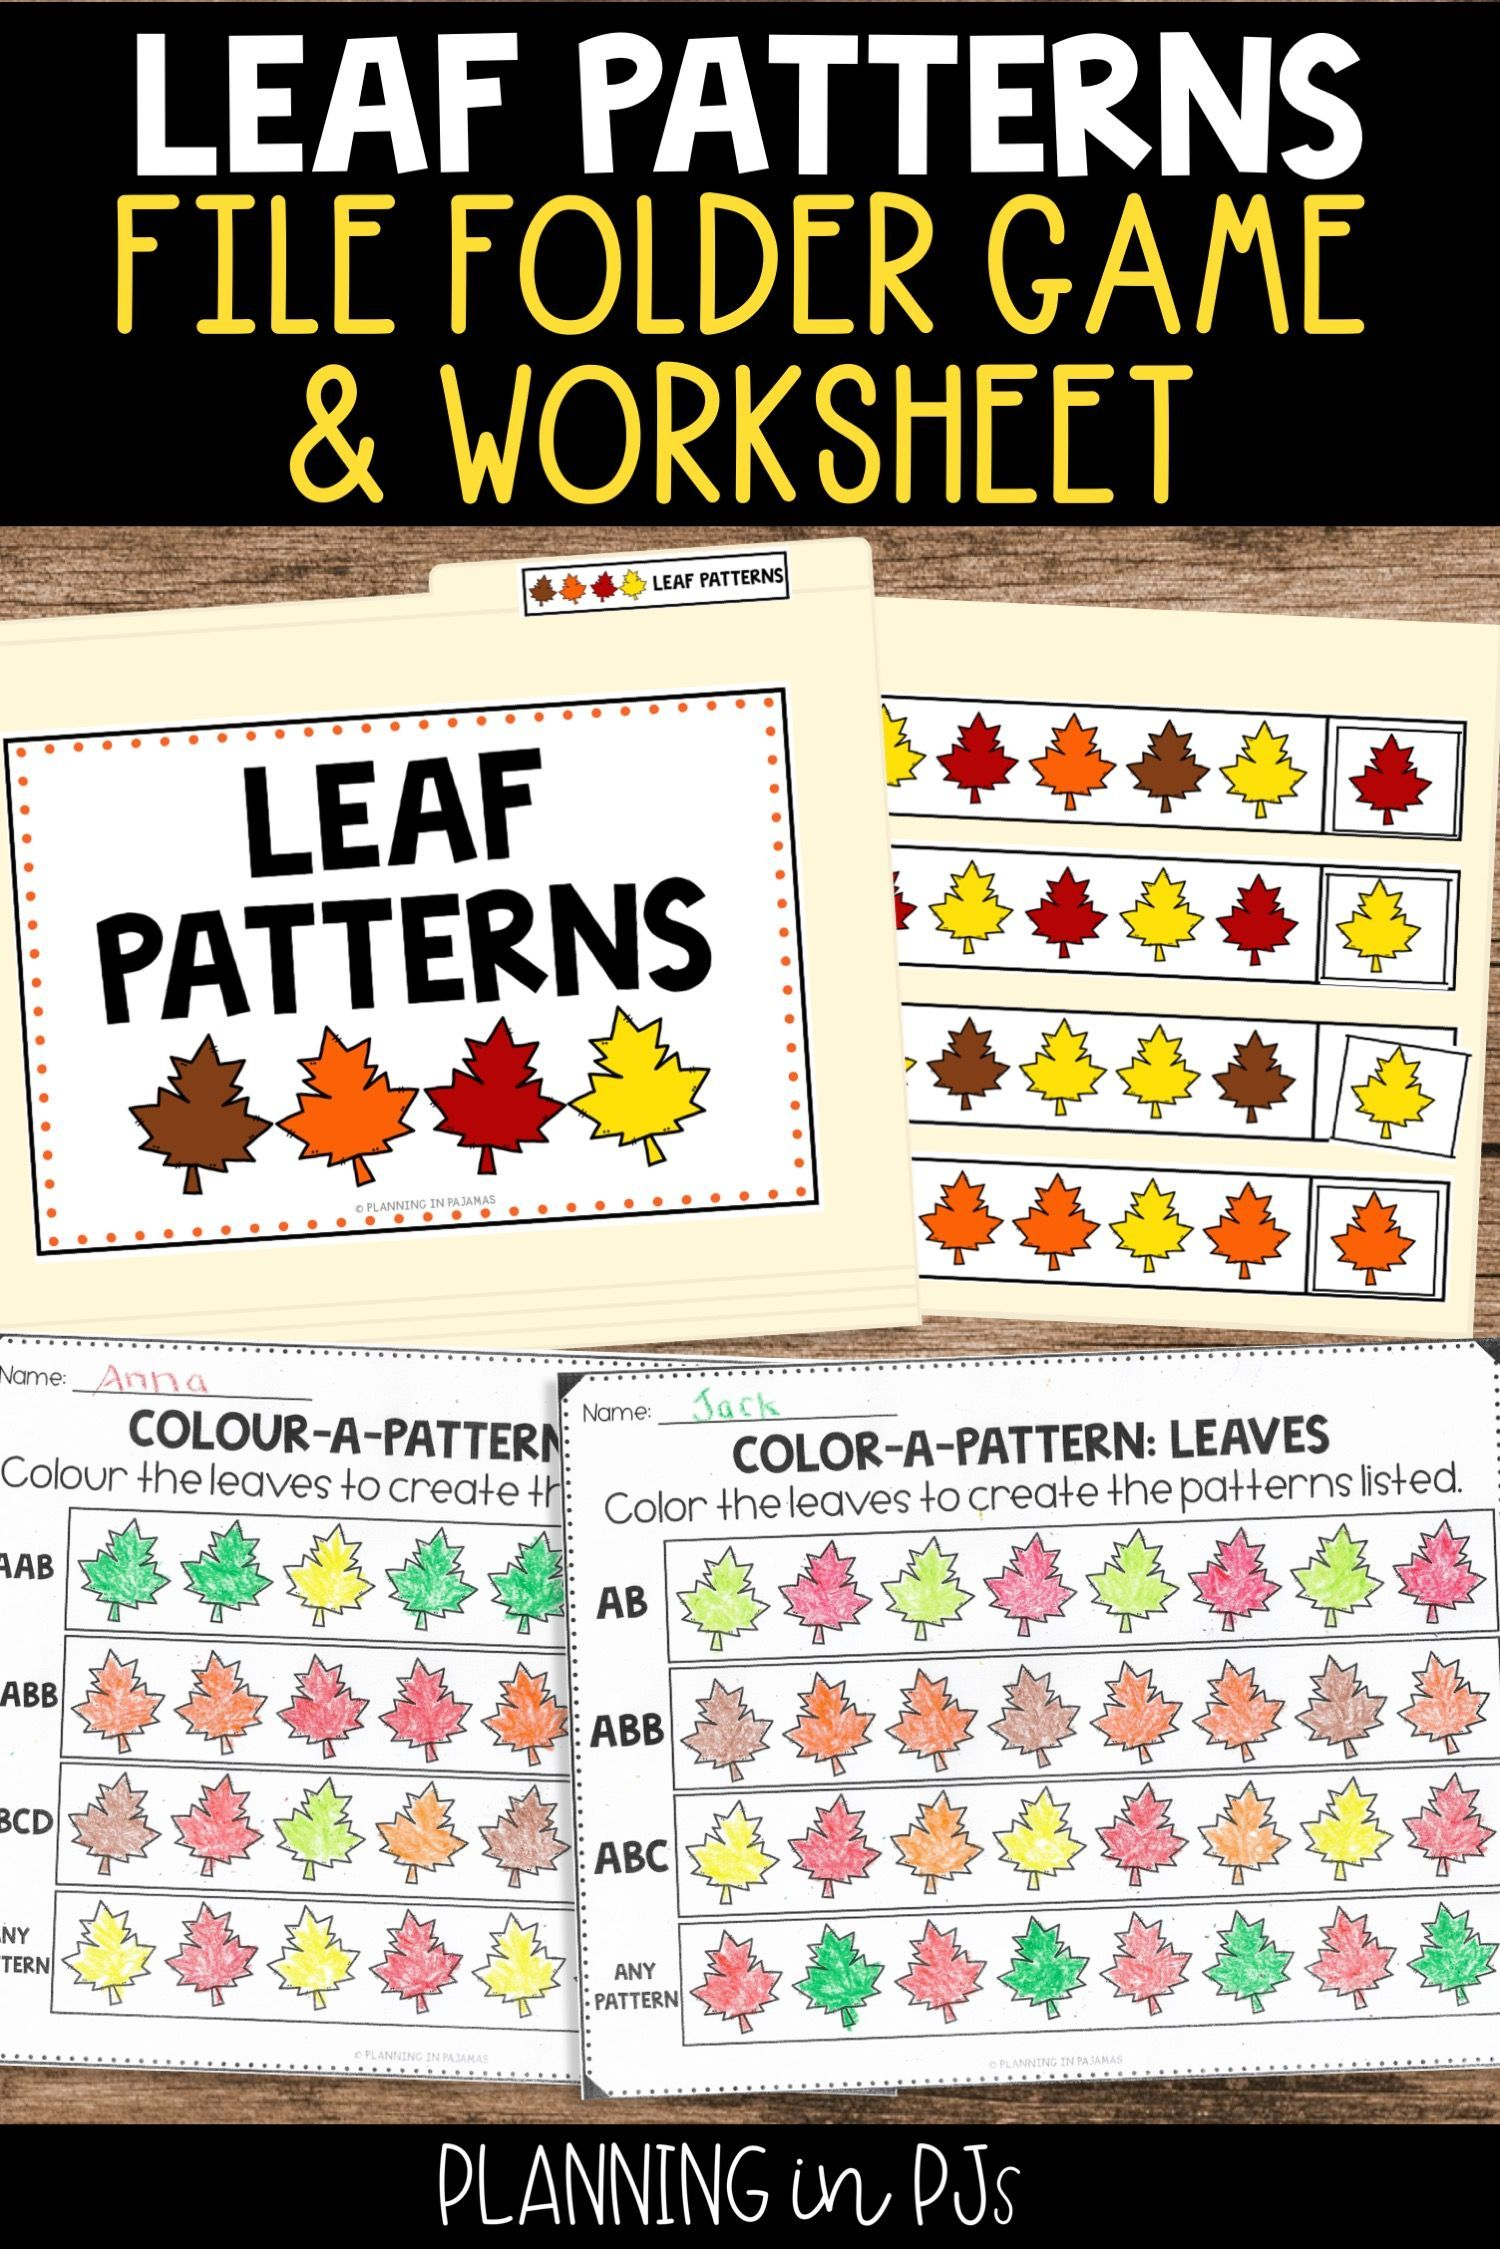 Ab Abb Abc Aab Aabb And Abcd Patterns Are All Practiced With Leaves In These Works Ab Pattern Worksheet Pattern Worksheet Kindergarten Addition Worksheets [ 2249 x 1500 Pixel ]